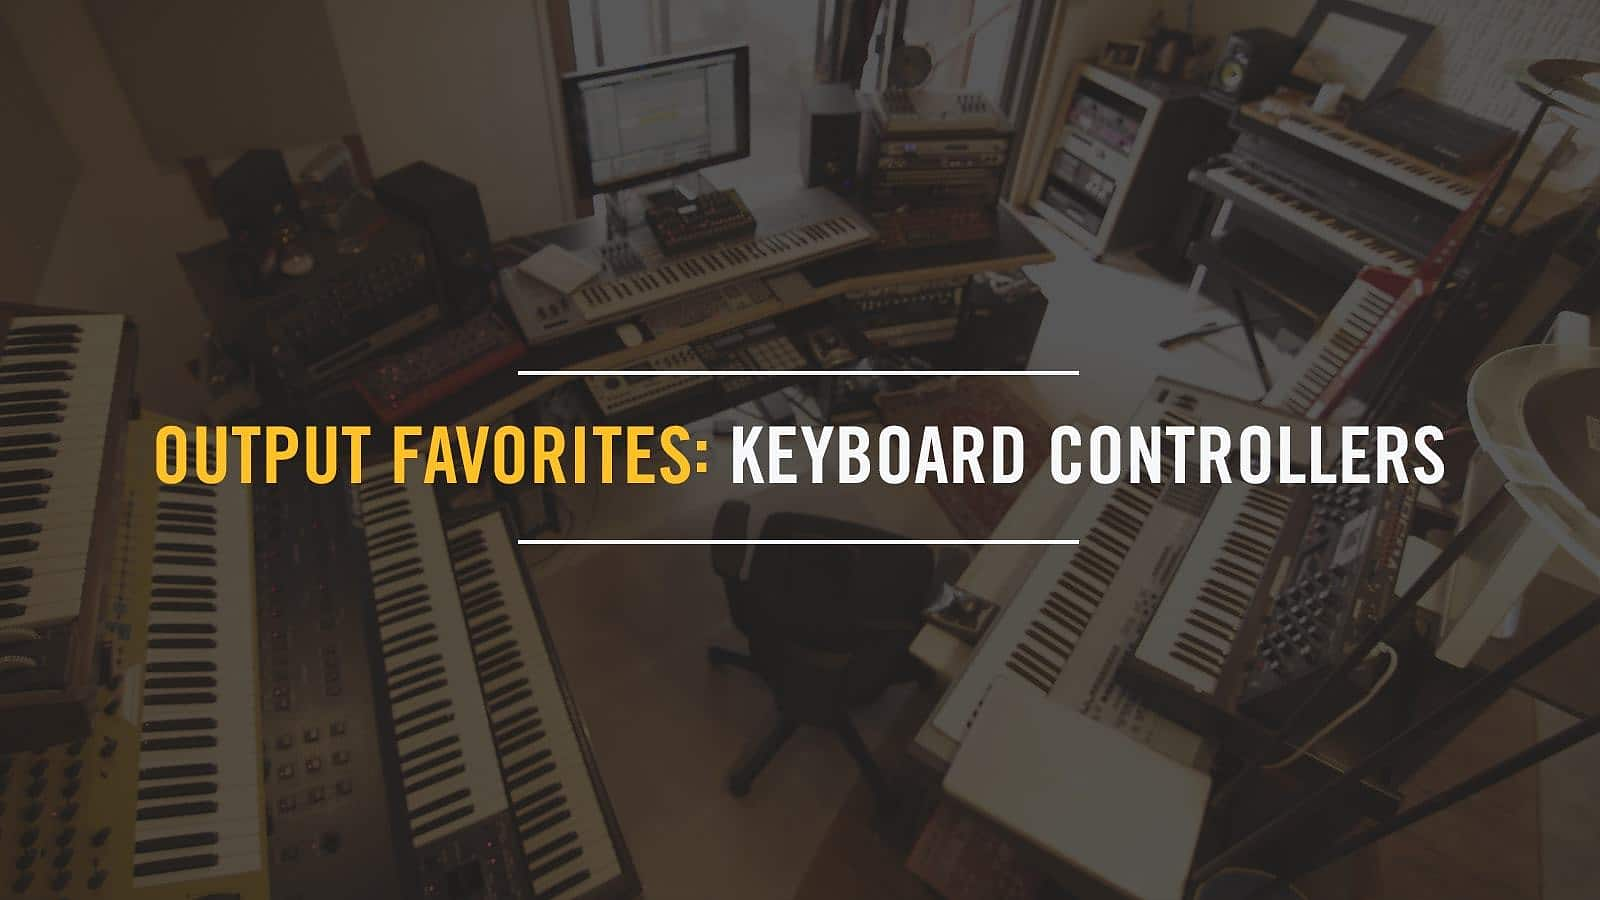 Output Favorites: Keyboard Controllers by Output